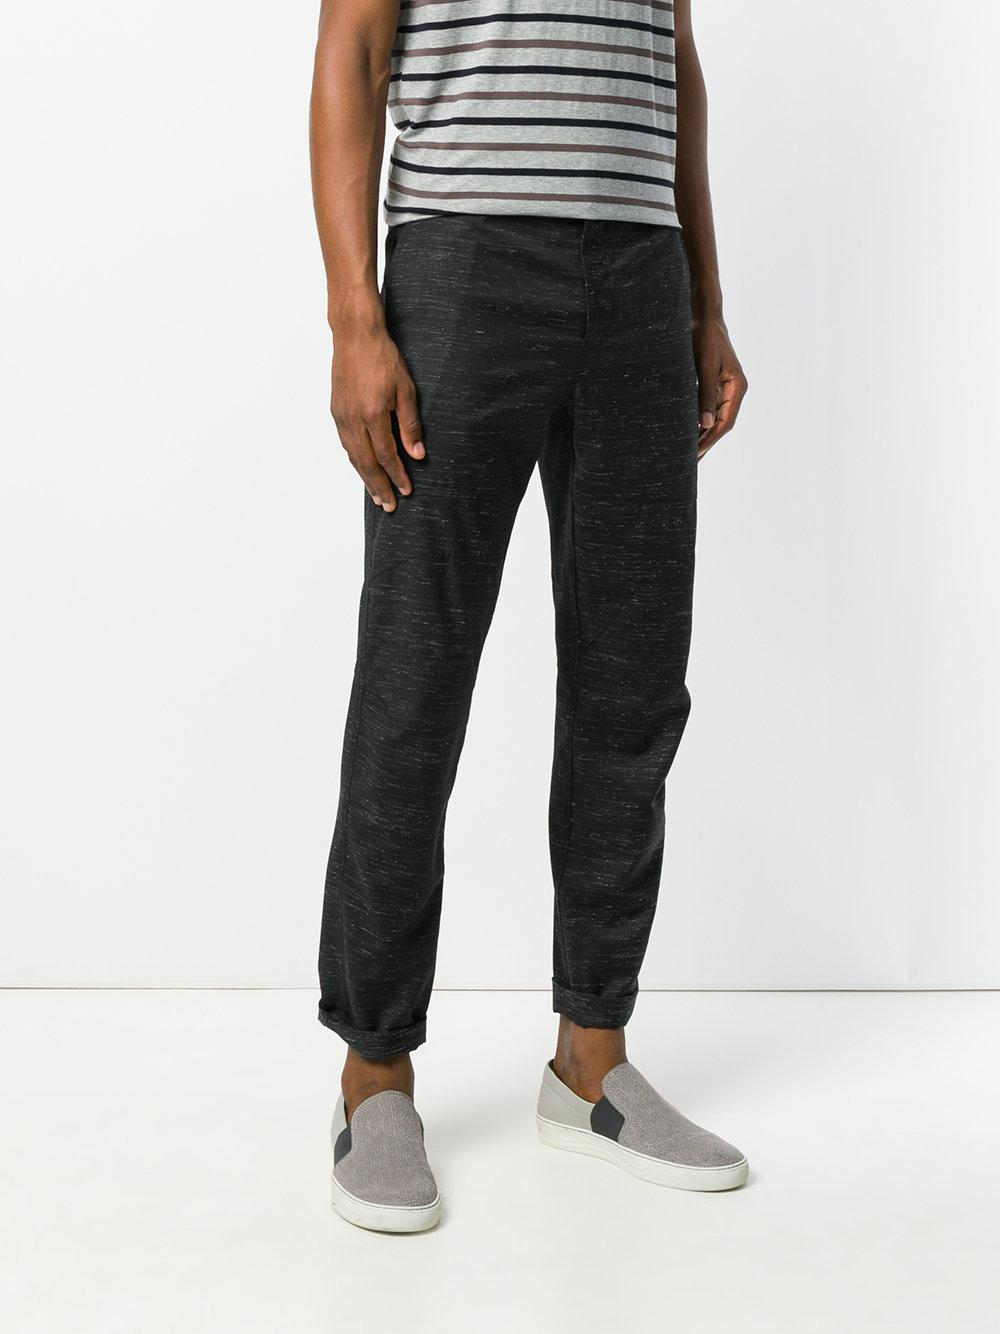 straight leg marl trousers - Black Lanvin iKn8yQWe